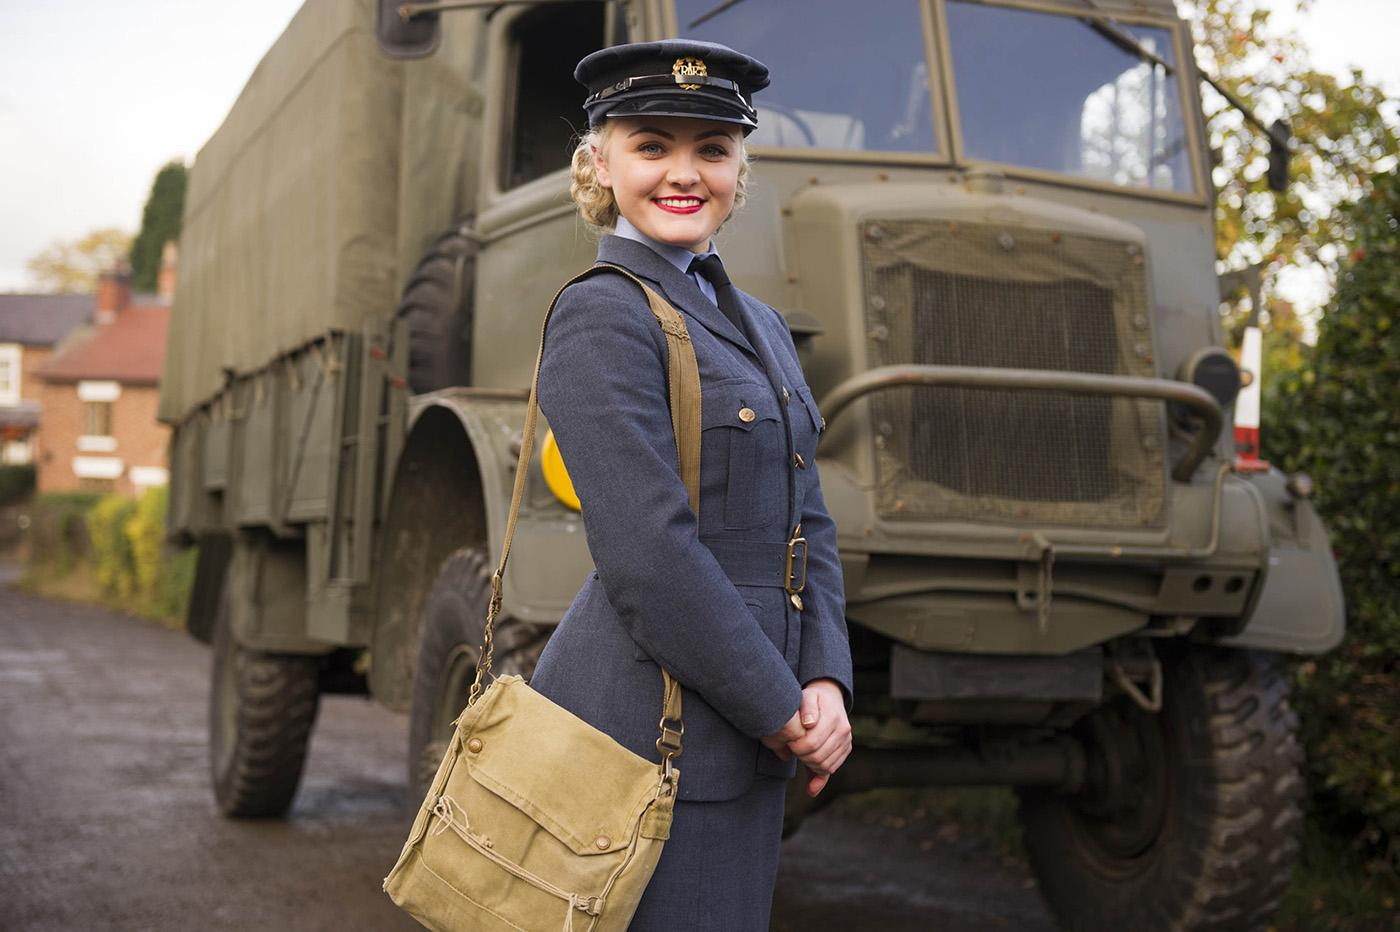 Jodie Hamblett as Jenny in 'Home Fires.' Photo: iTV Studios and MASTERPIECE